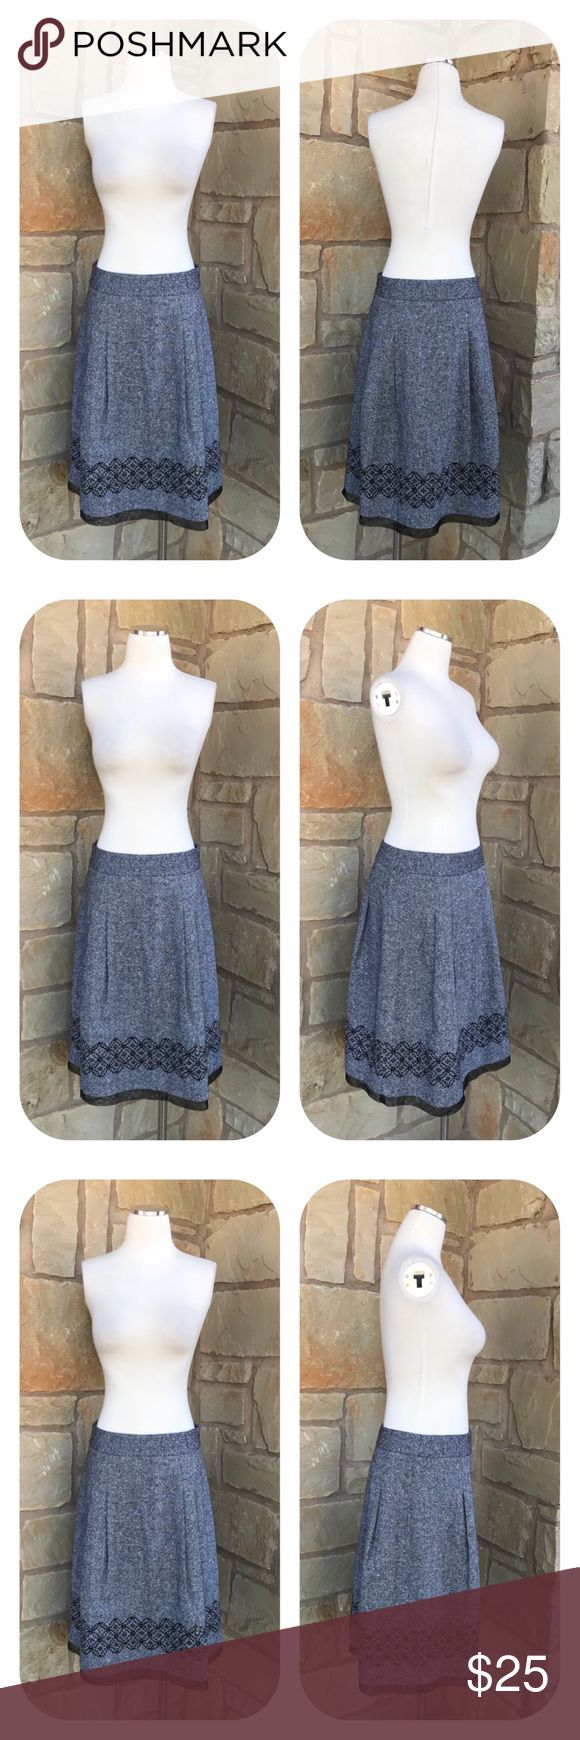 """Ann Taylor Loft Wool Blend Pleated Skirt Size 8 Ann Taylor Loft Wool Blend Pleated Skirt Size 8  -  Sequins Detail -  Fully Lined -  Hidden side zipper -  65% Wool 12% Silk 11% Rayon      11% Polyester 1% Other Fiber -  Measurements      Waist 30""""     Length 24.5""""  Thanks for visiting! 🔥🔥🔥 LOFT Skirts A-Line or Full"""